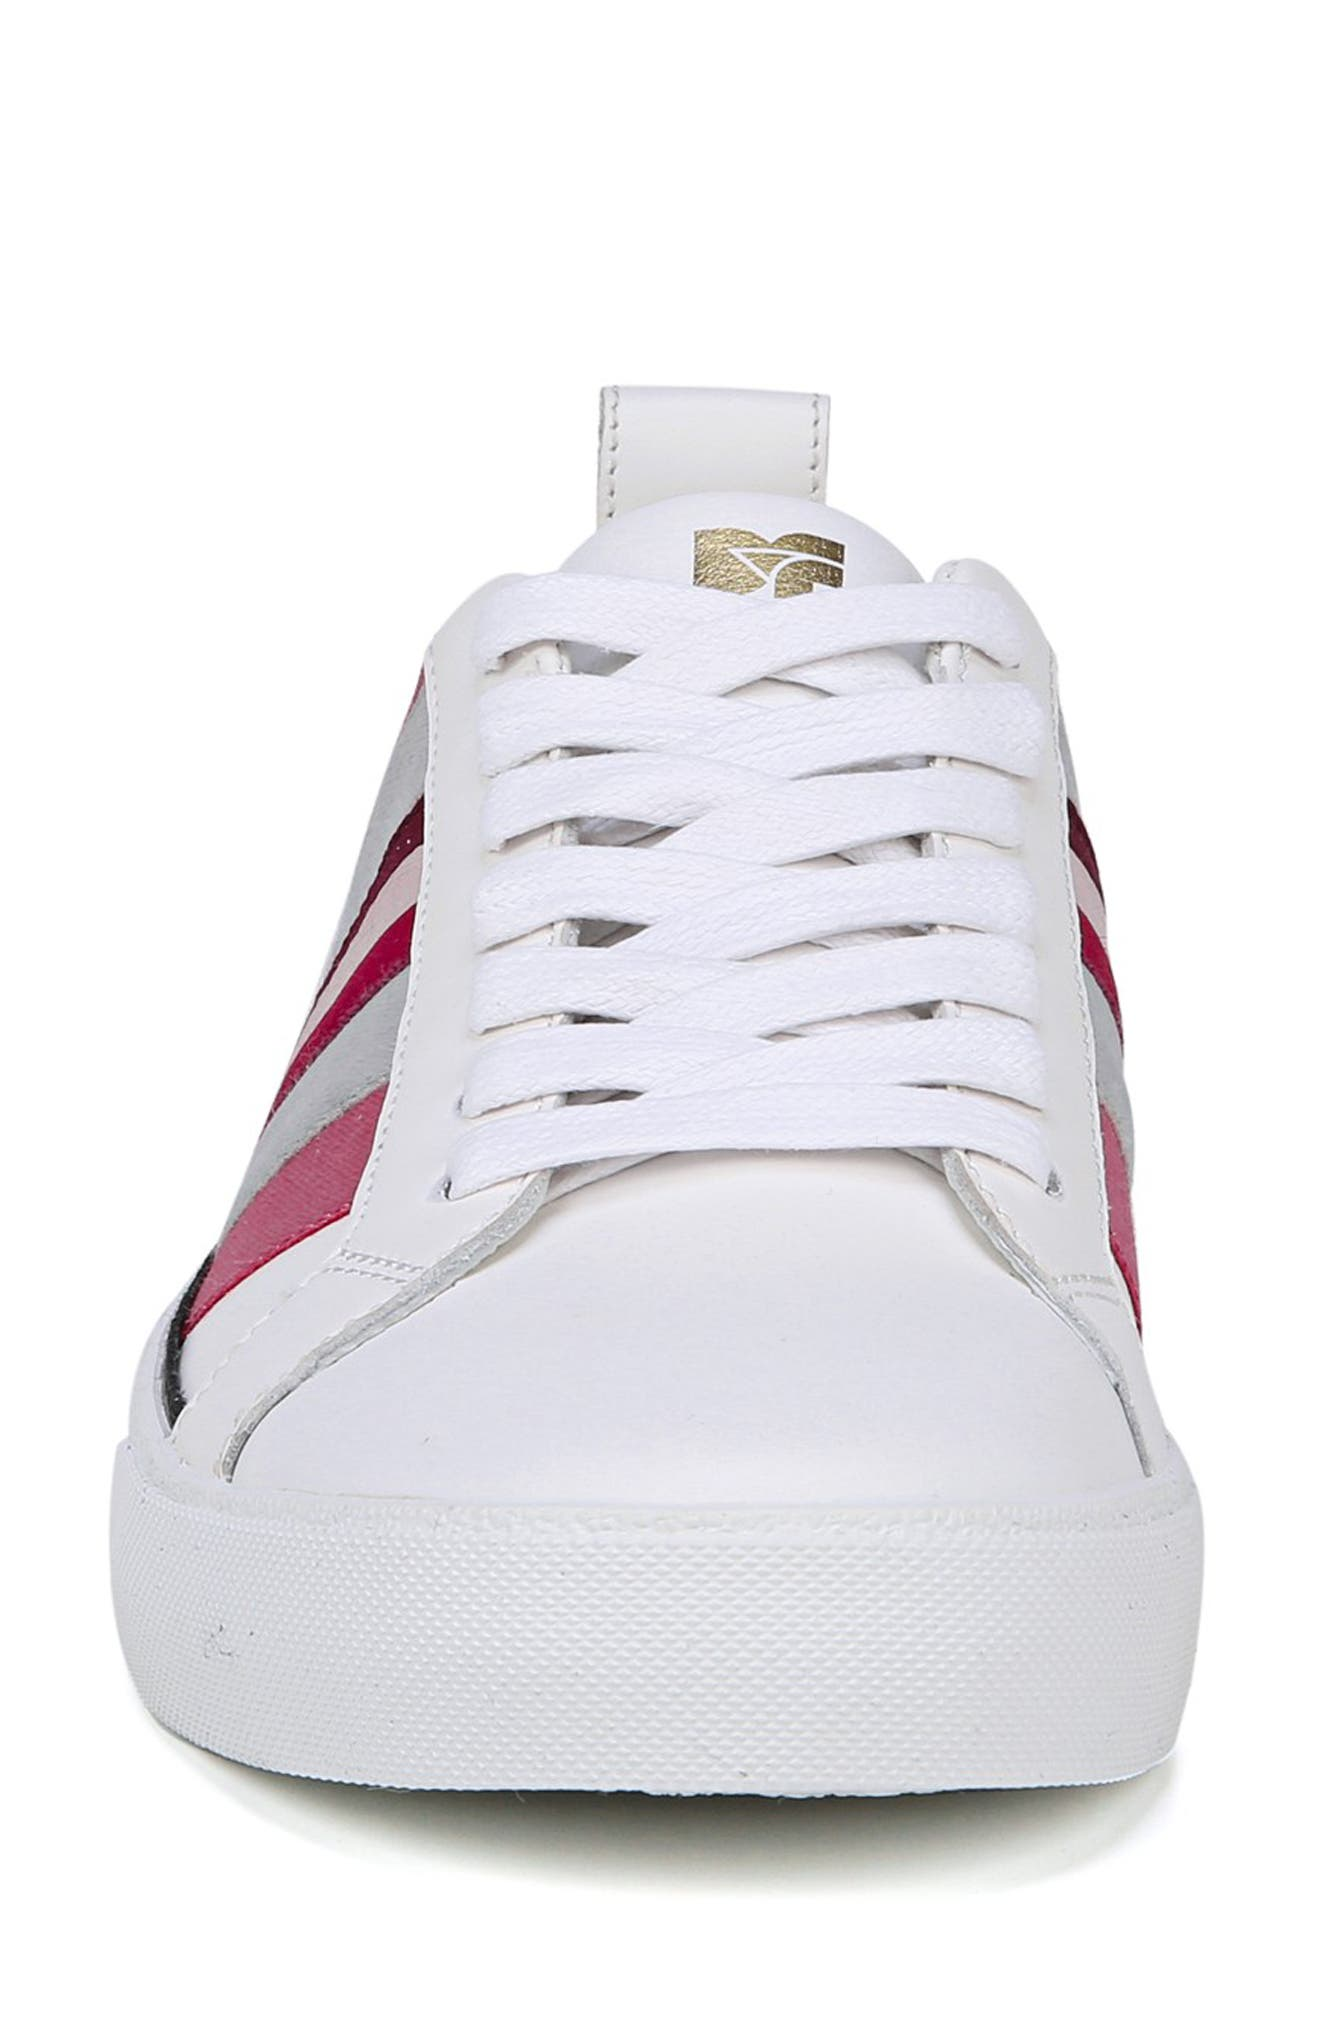 Tess Lace-Up Sneaker,                             Alternate thumbnail 5, color,                             Pink Multi